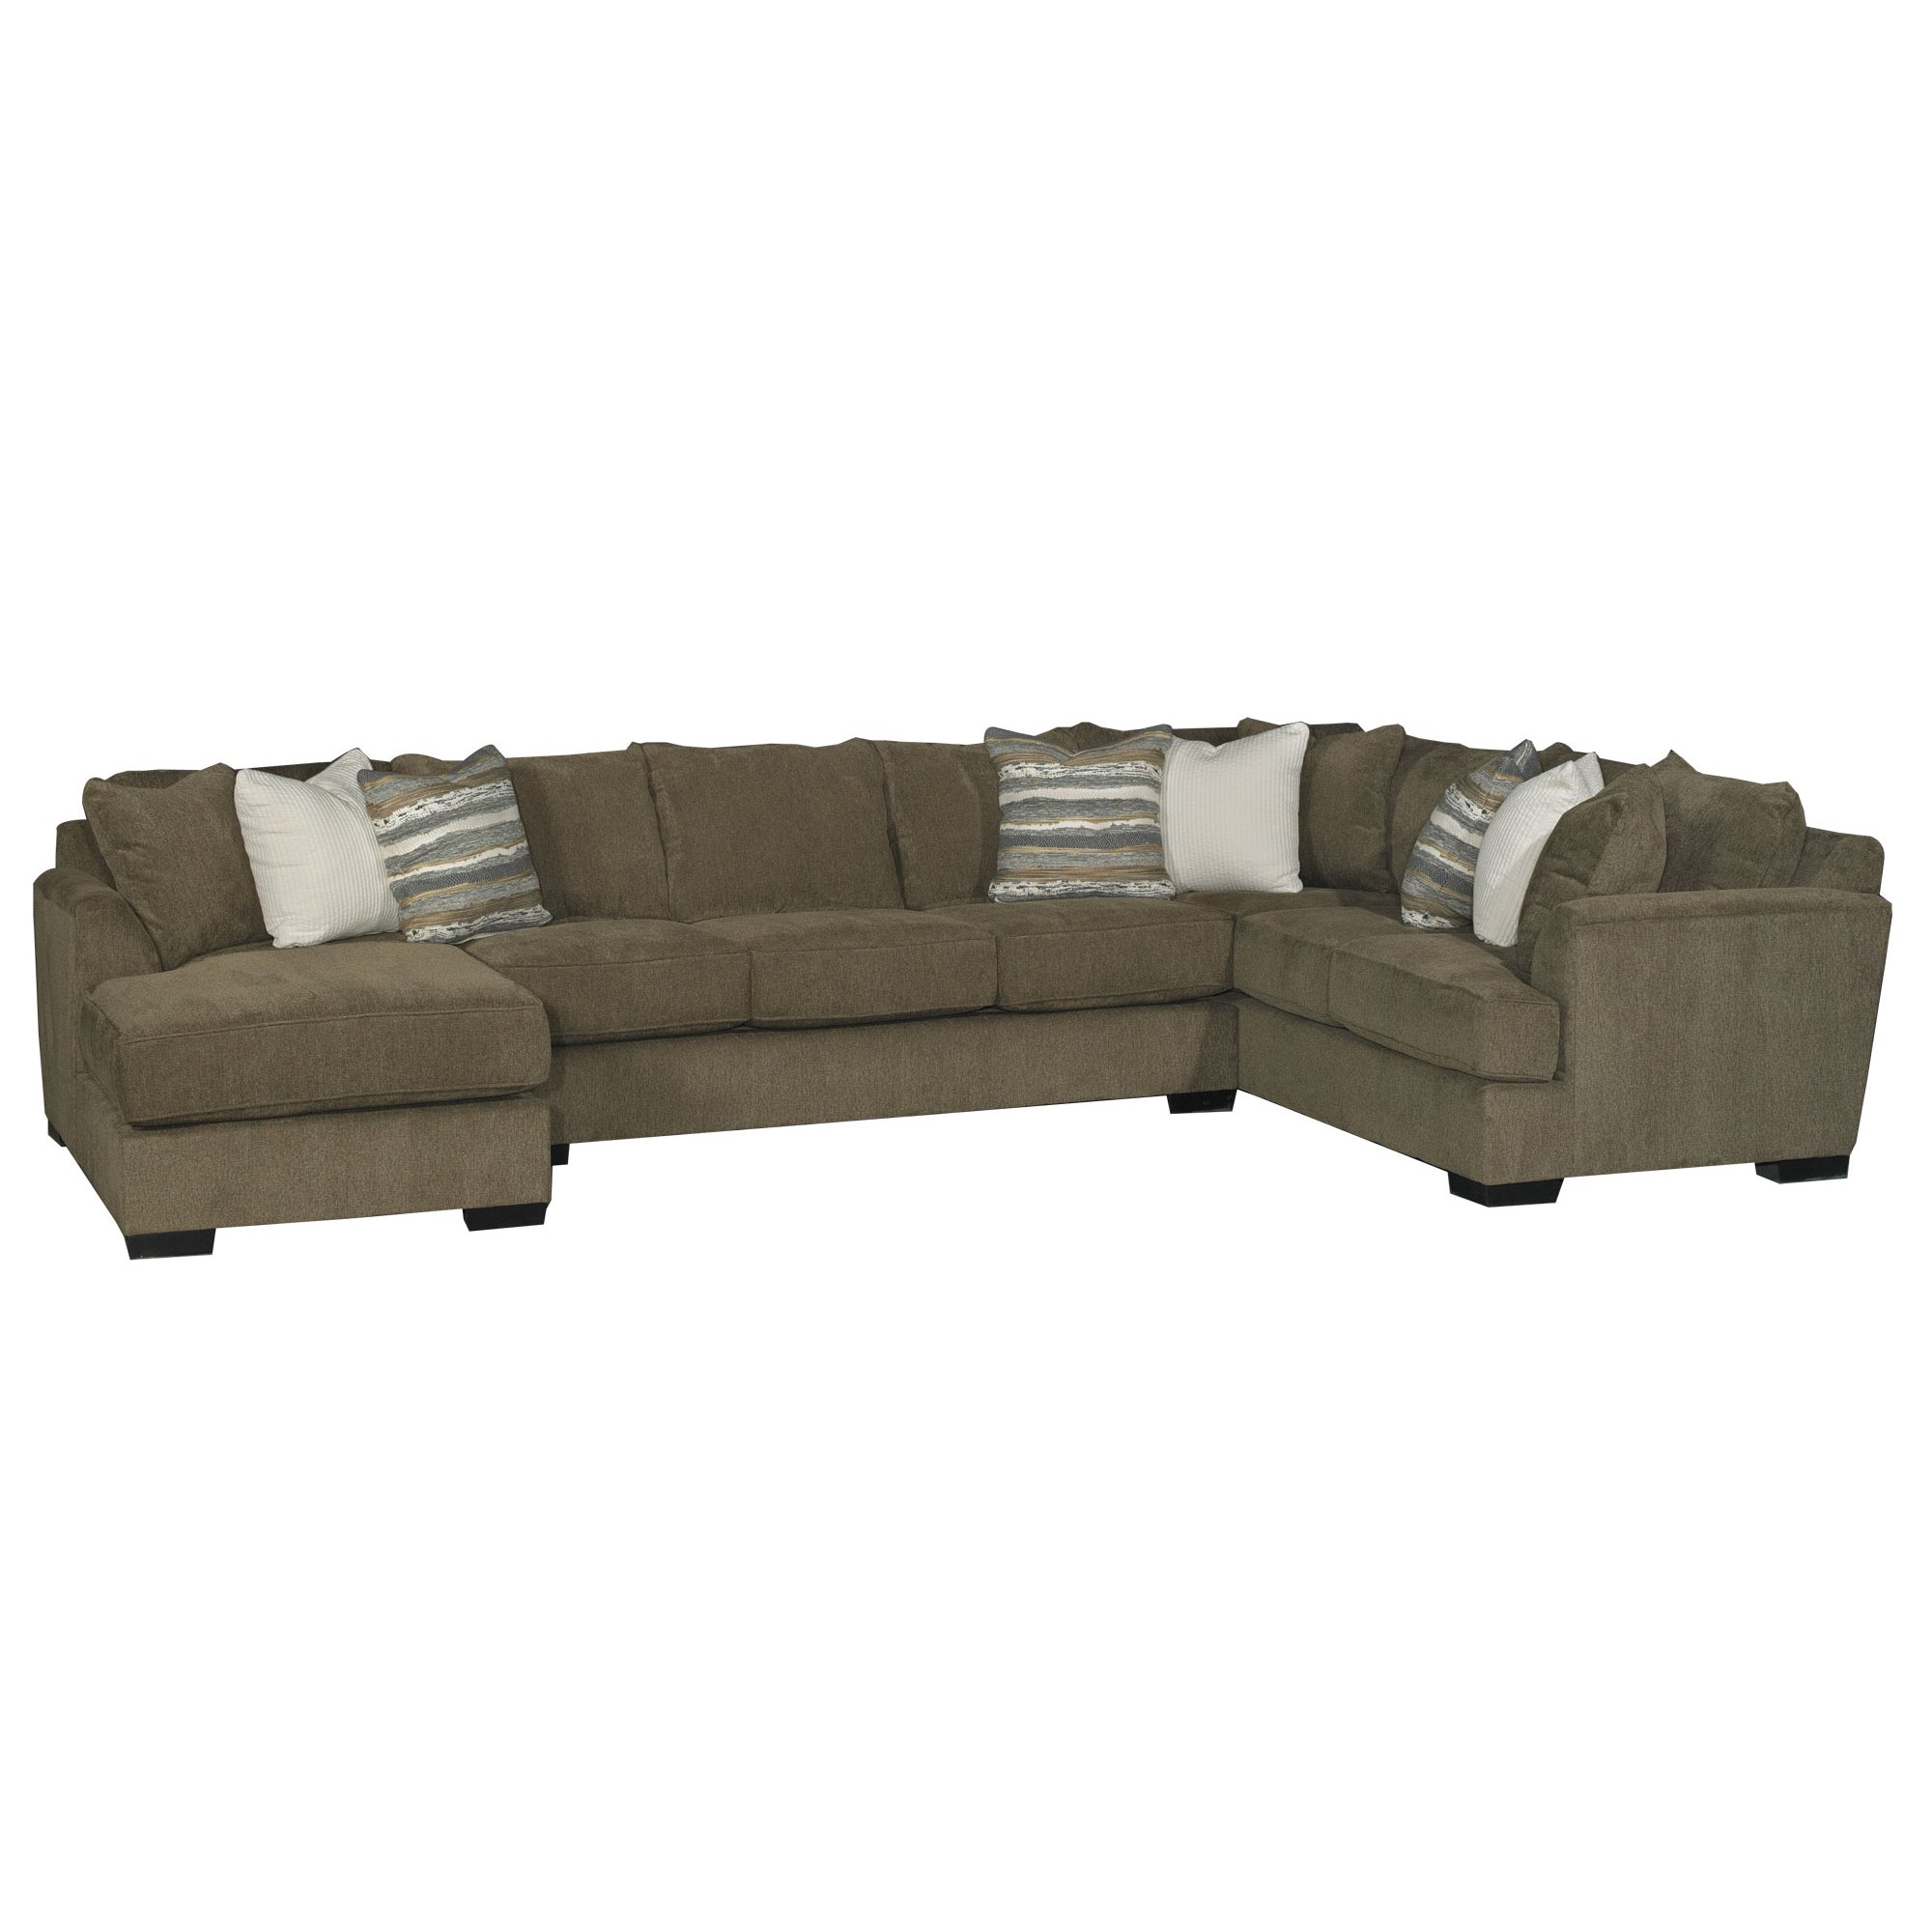 Brown 3 Piece Sectional Sofa with LAF Chaise - Tranquility | RC ...